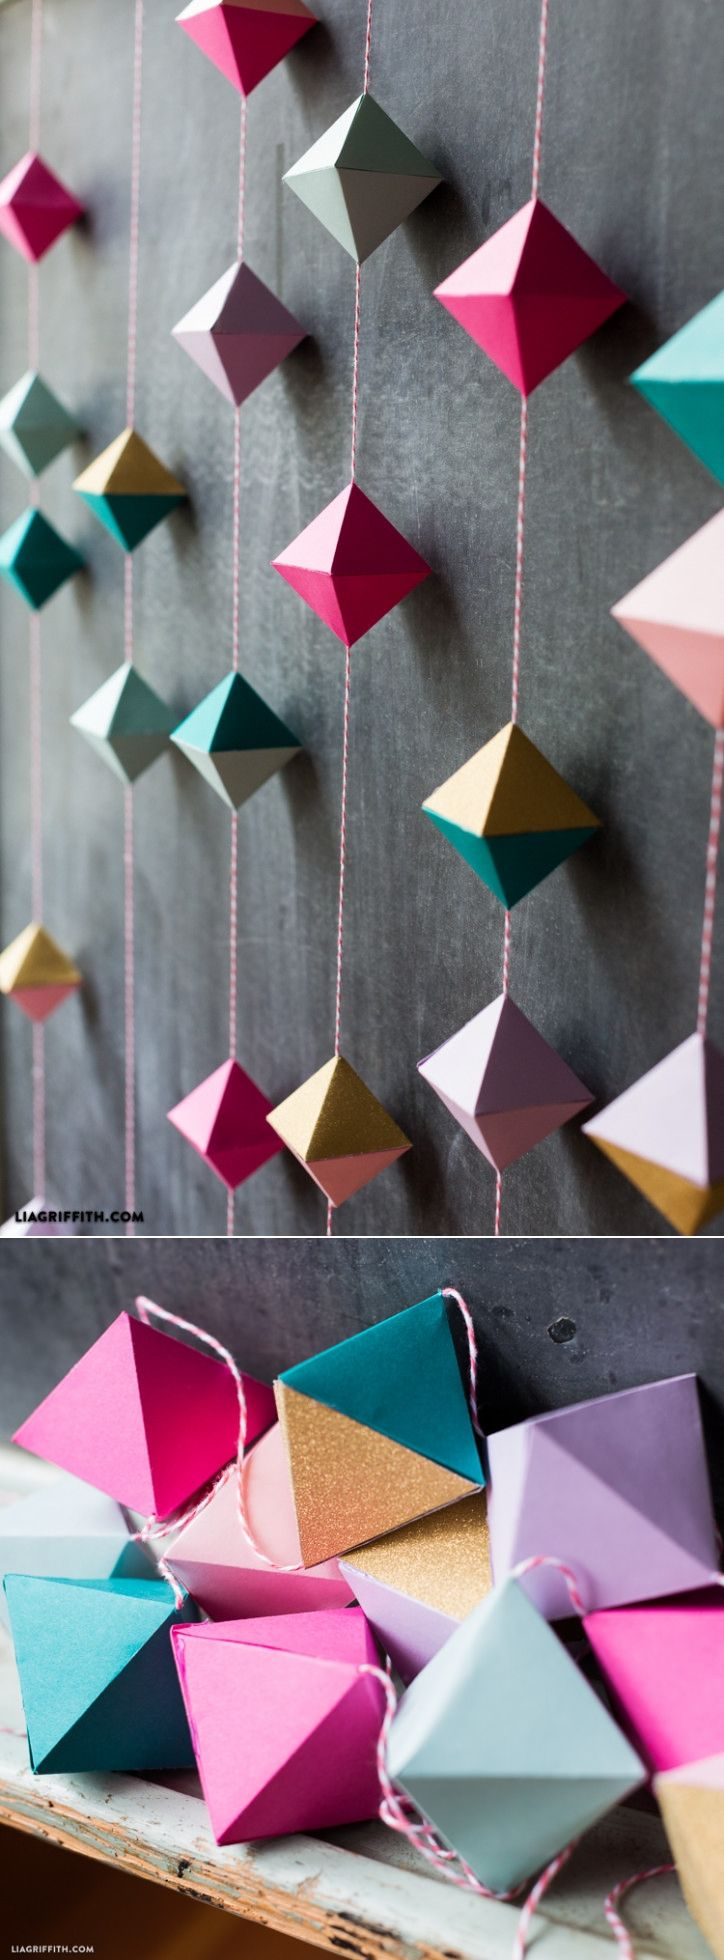 The best images about ideas on pinterest